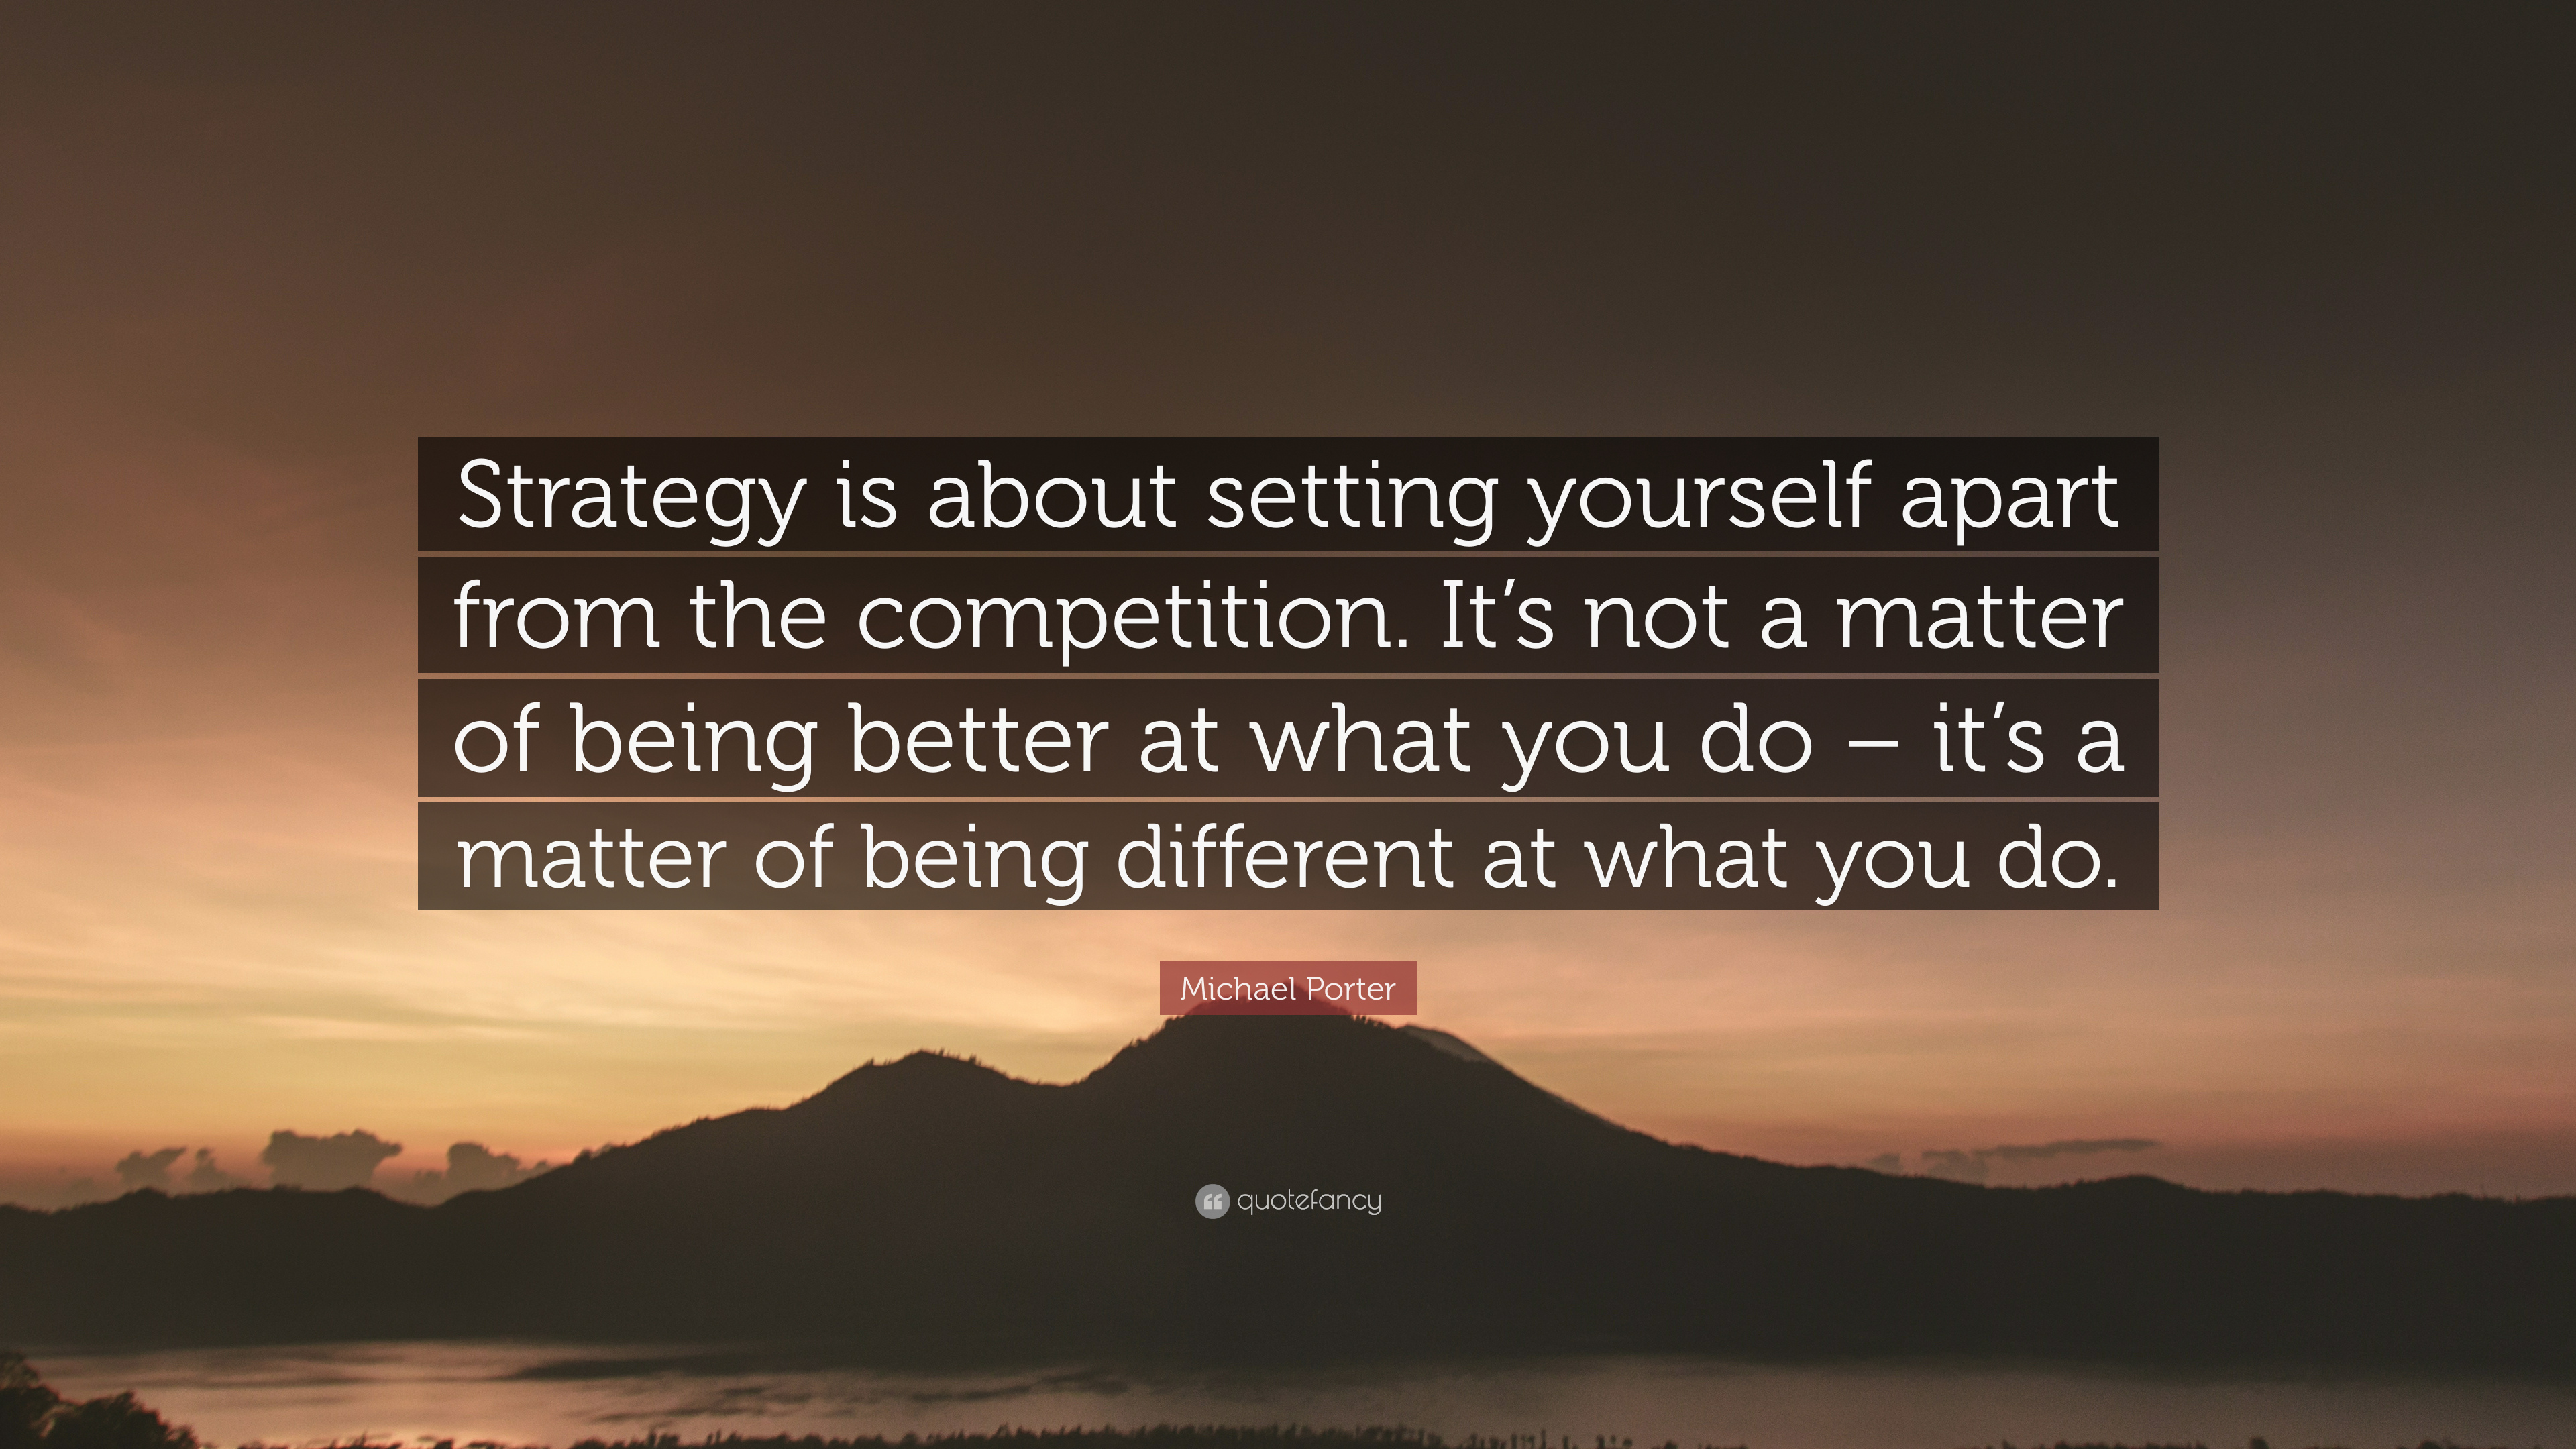 Michael Porter Quote: Strategy is about setting yourself